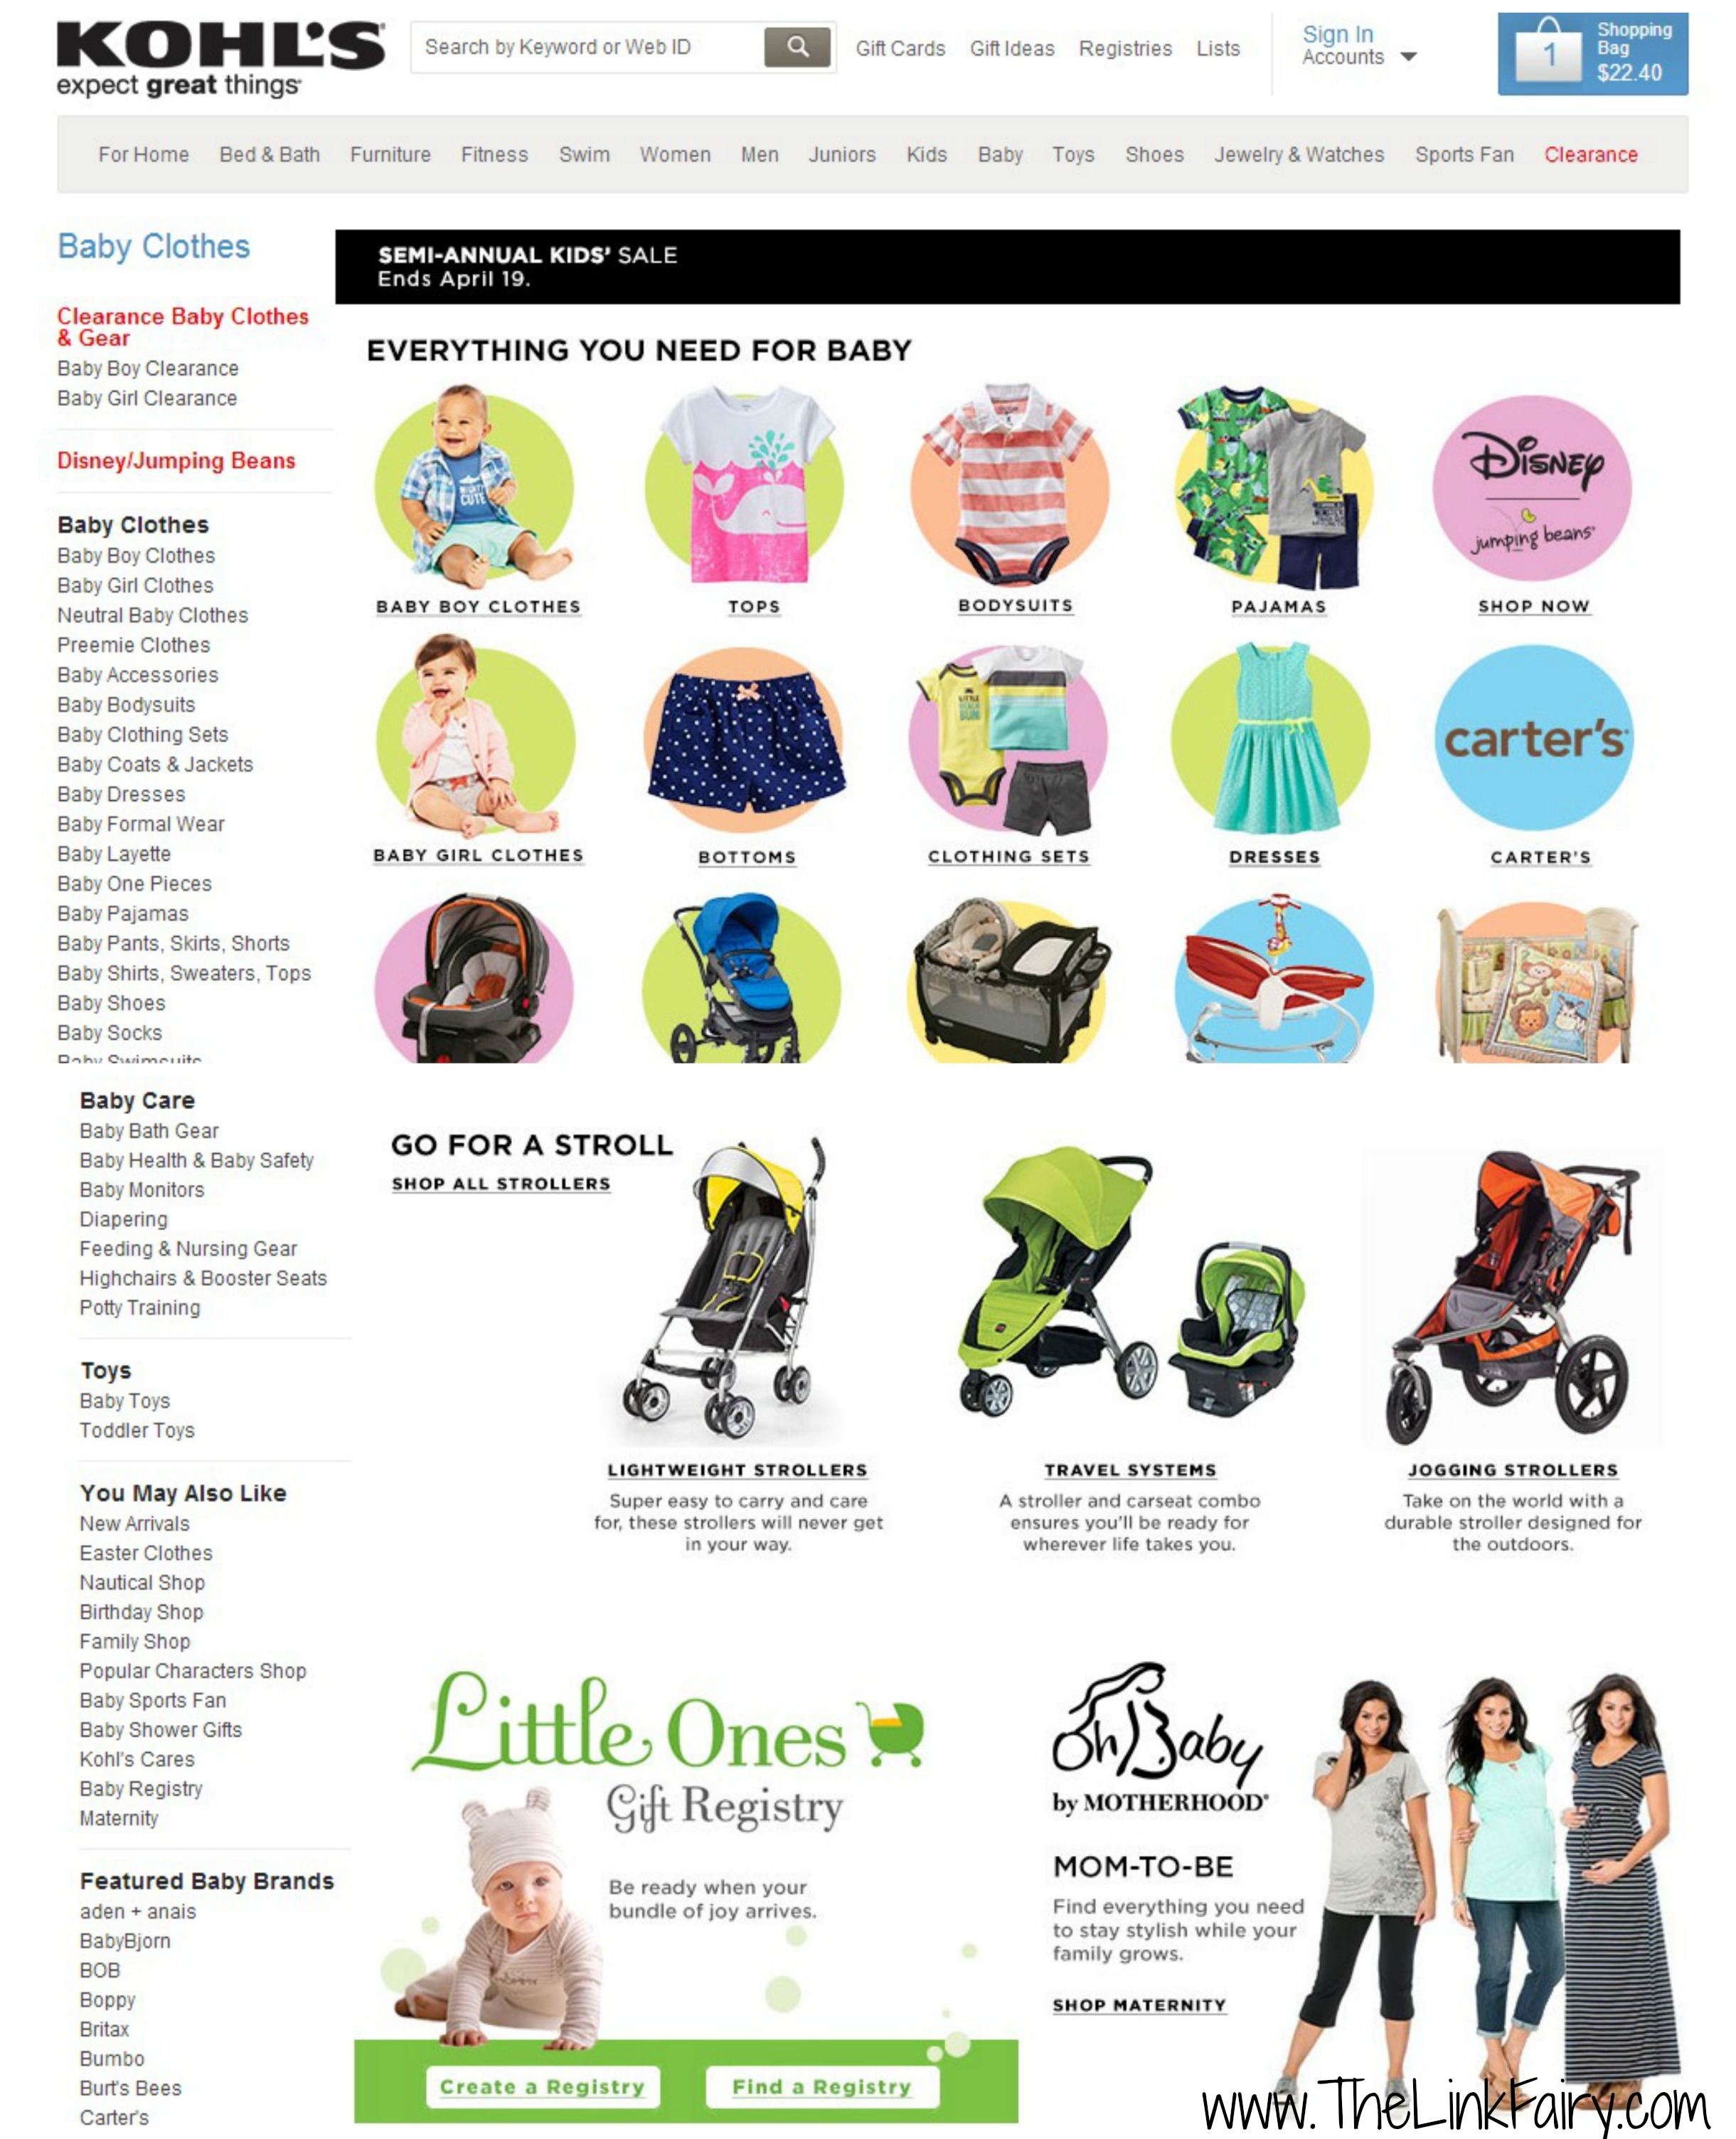 Find everything for mom and baby at Kohls